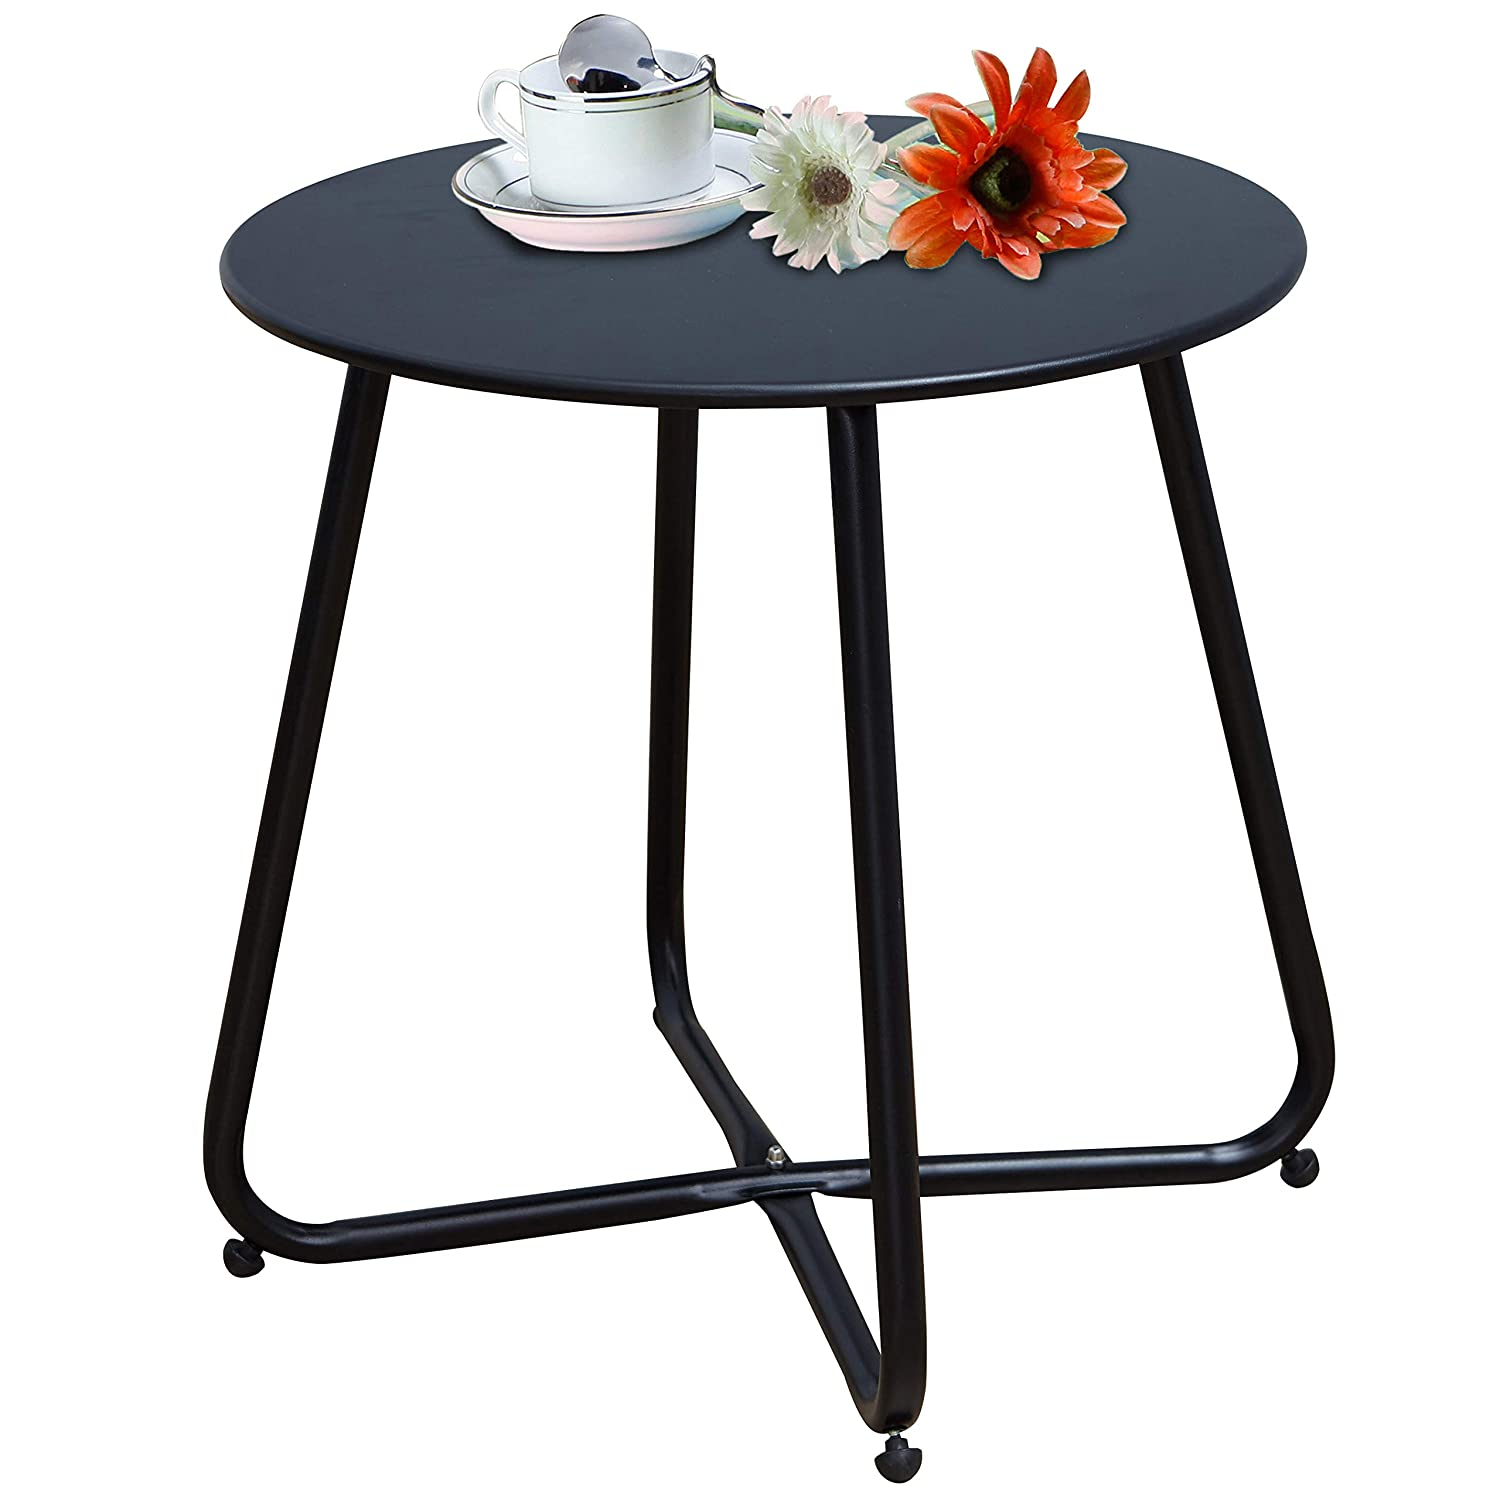 Grand patio Large Sized Steel Patio Coffee Table, Weather Resistant Outdoor Side Table, Small Round End Tables, Black